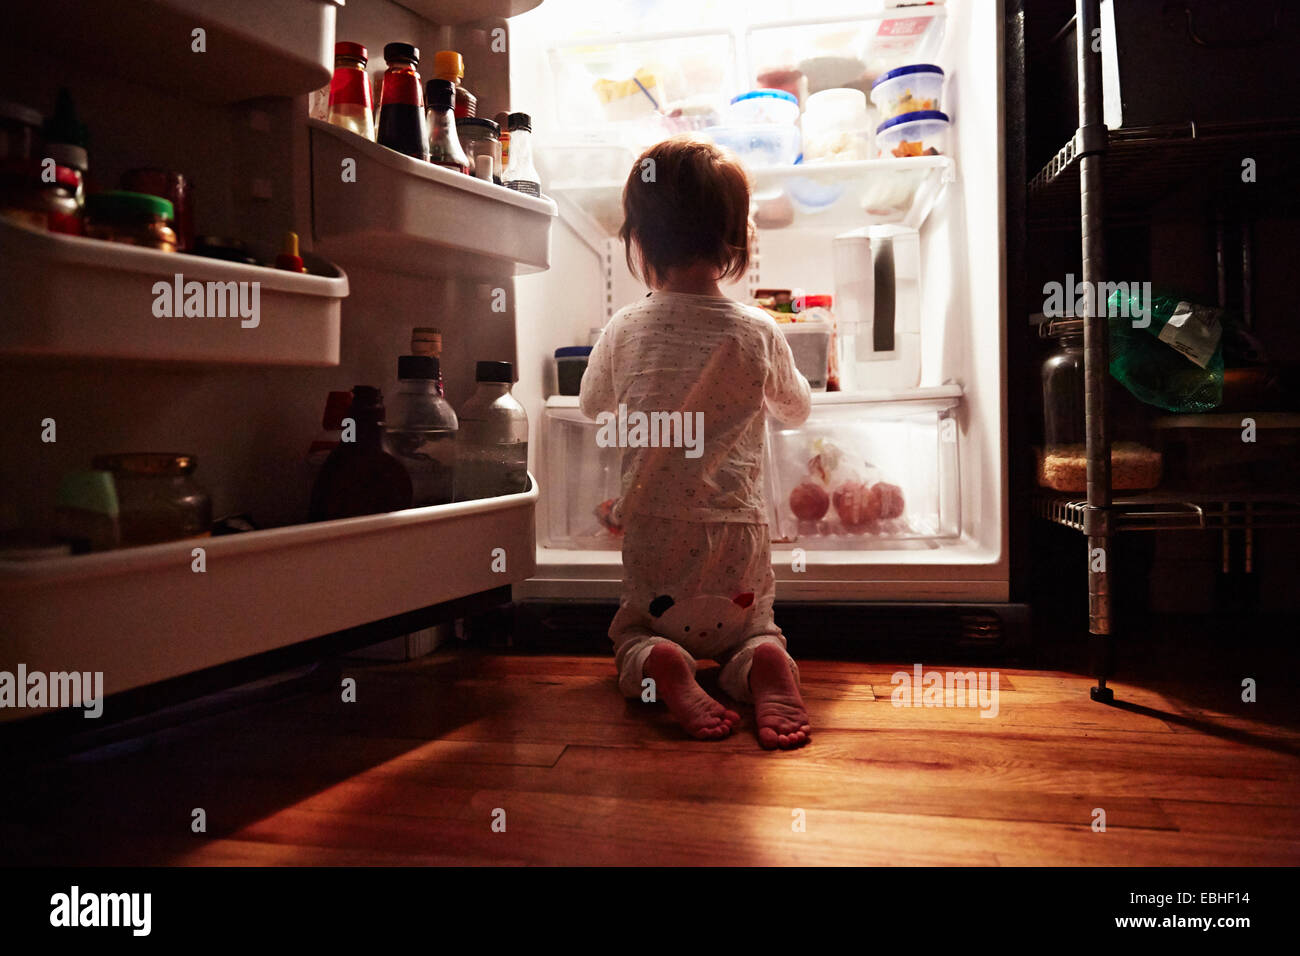 Rear view of male toddler kneeling in front of open fridge at night - Stock Image